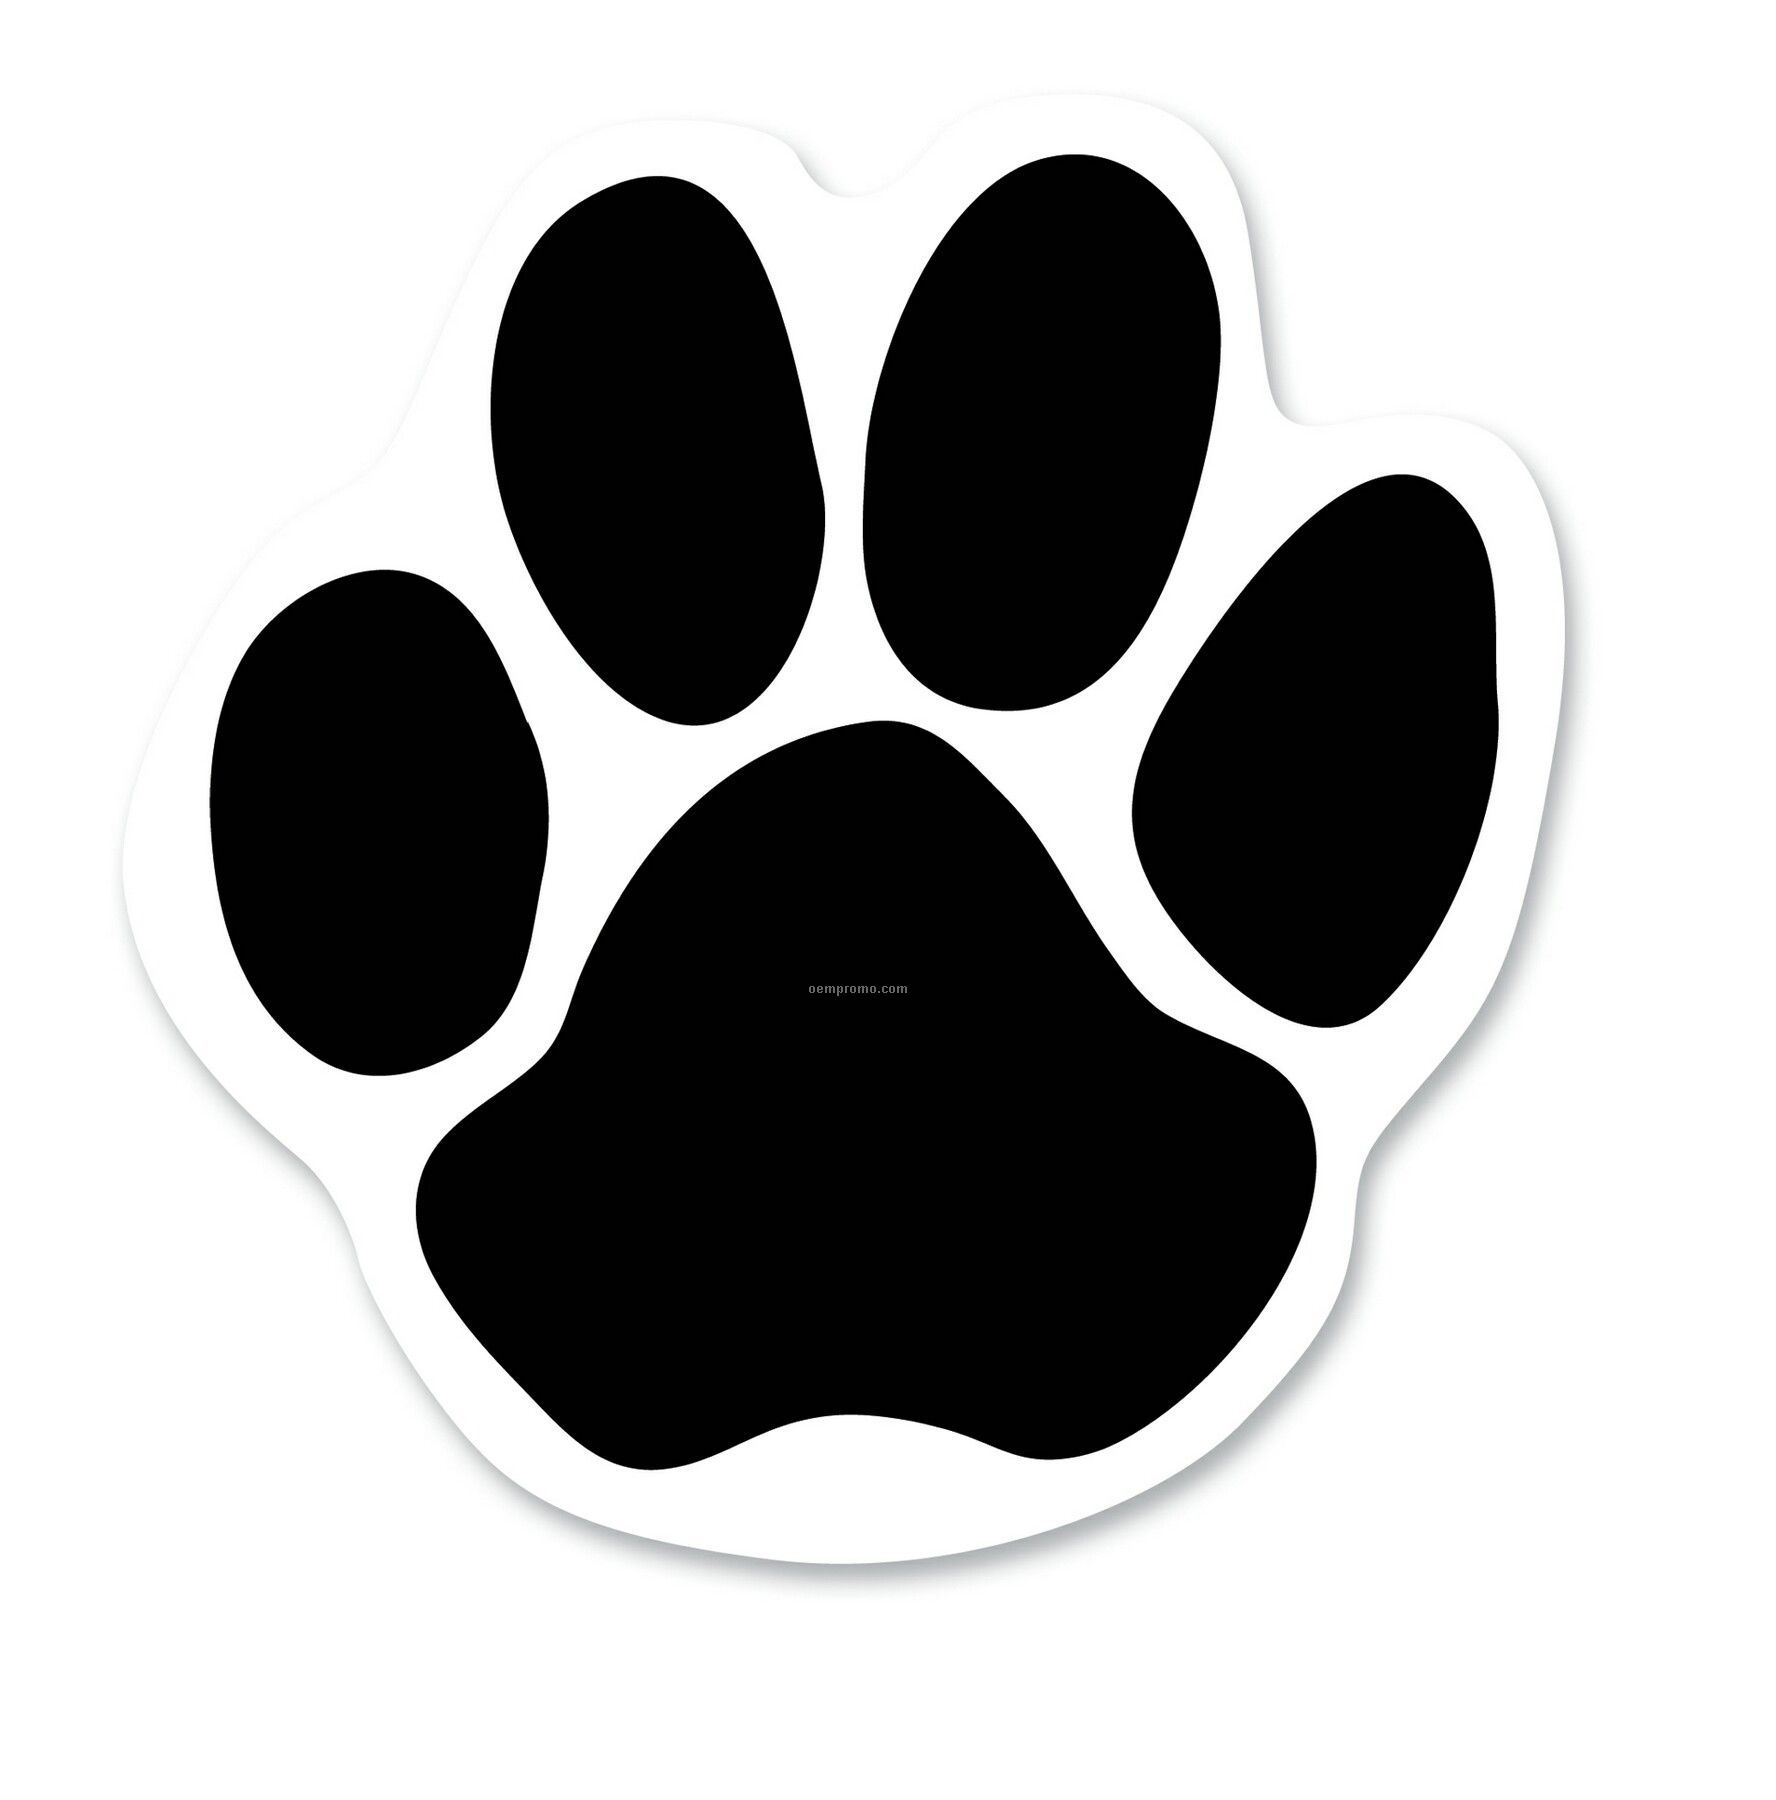 graphic relating to Printable Paw Prints named 11 Paw Print Impression Shots - Red Paw Print Clip Artwork